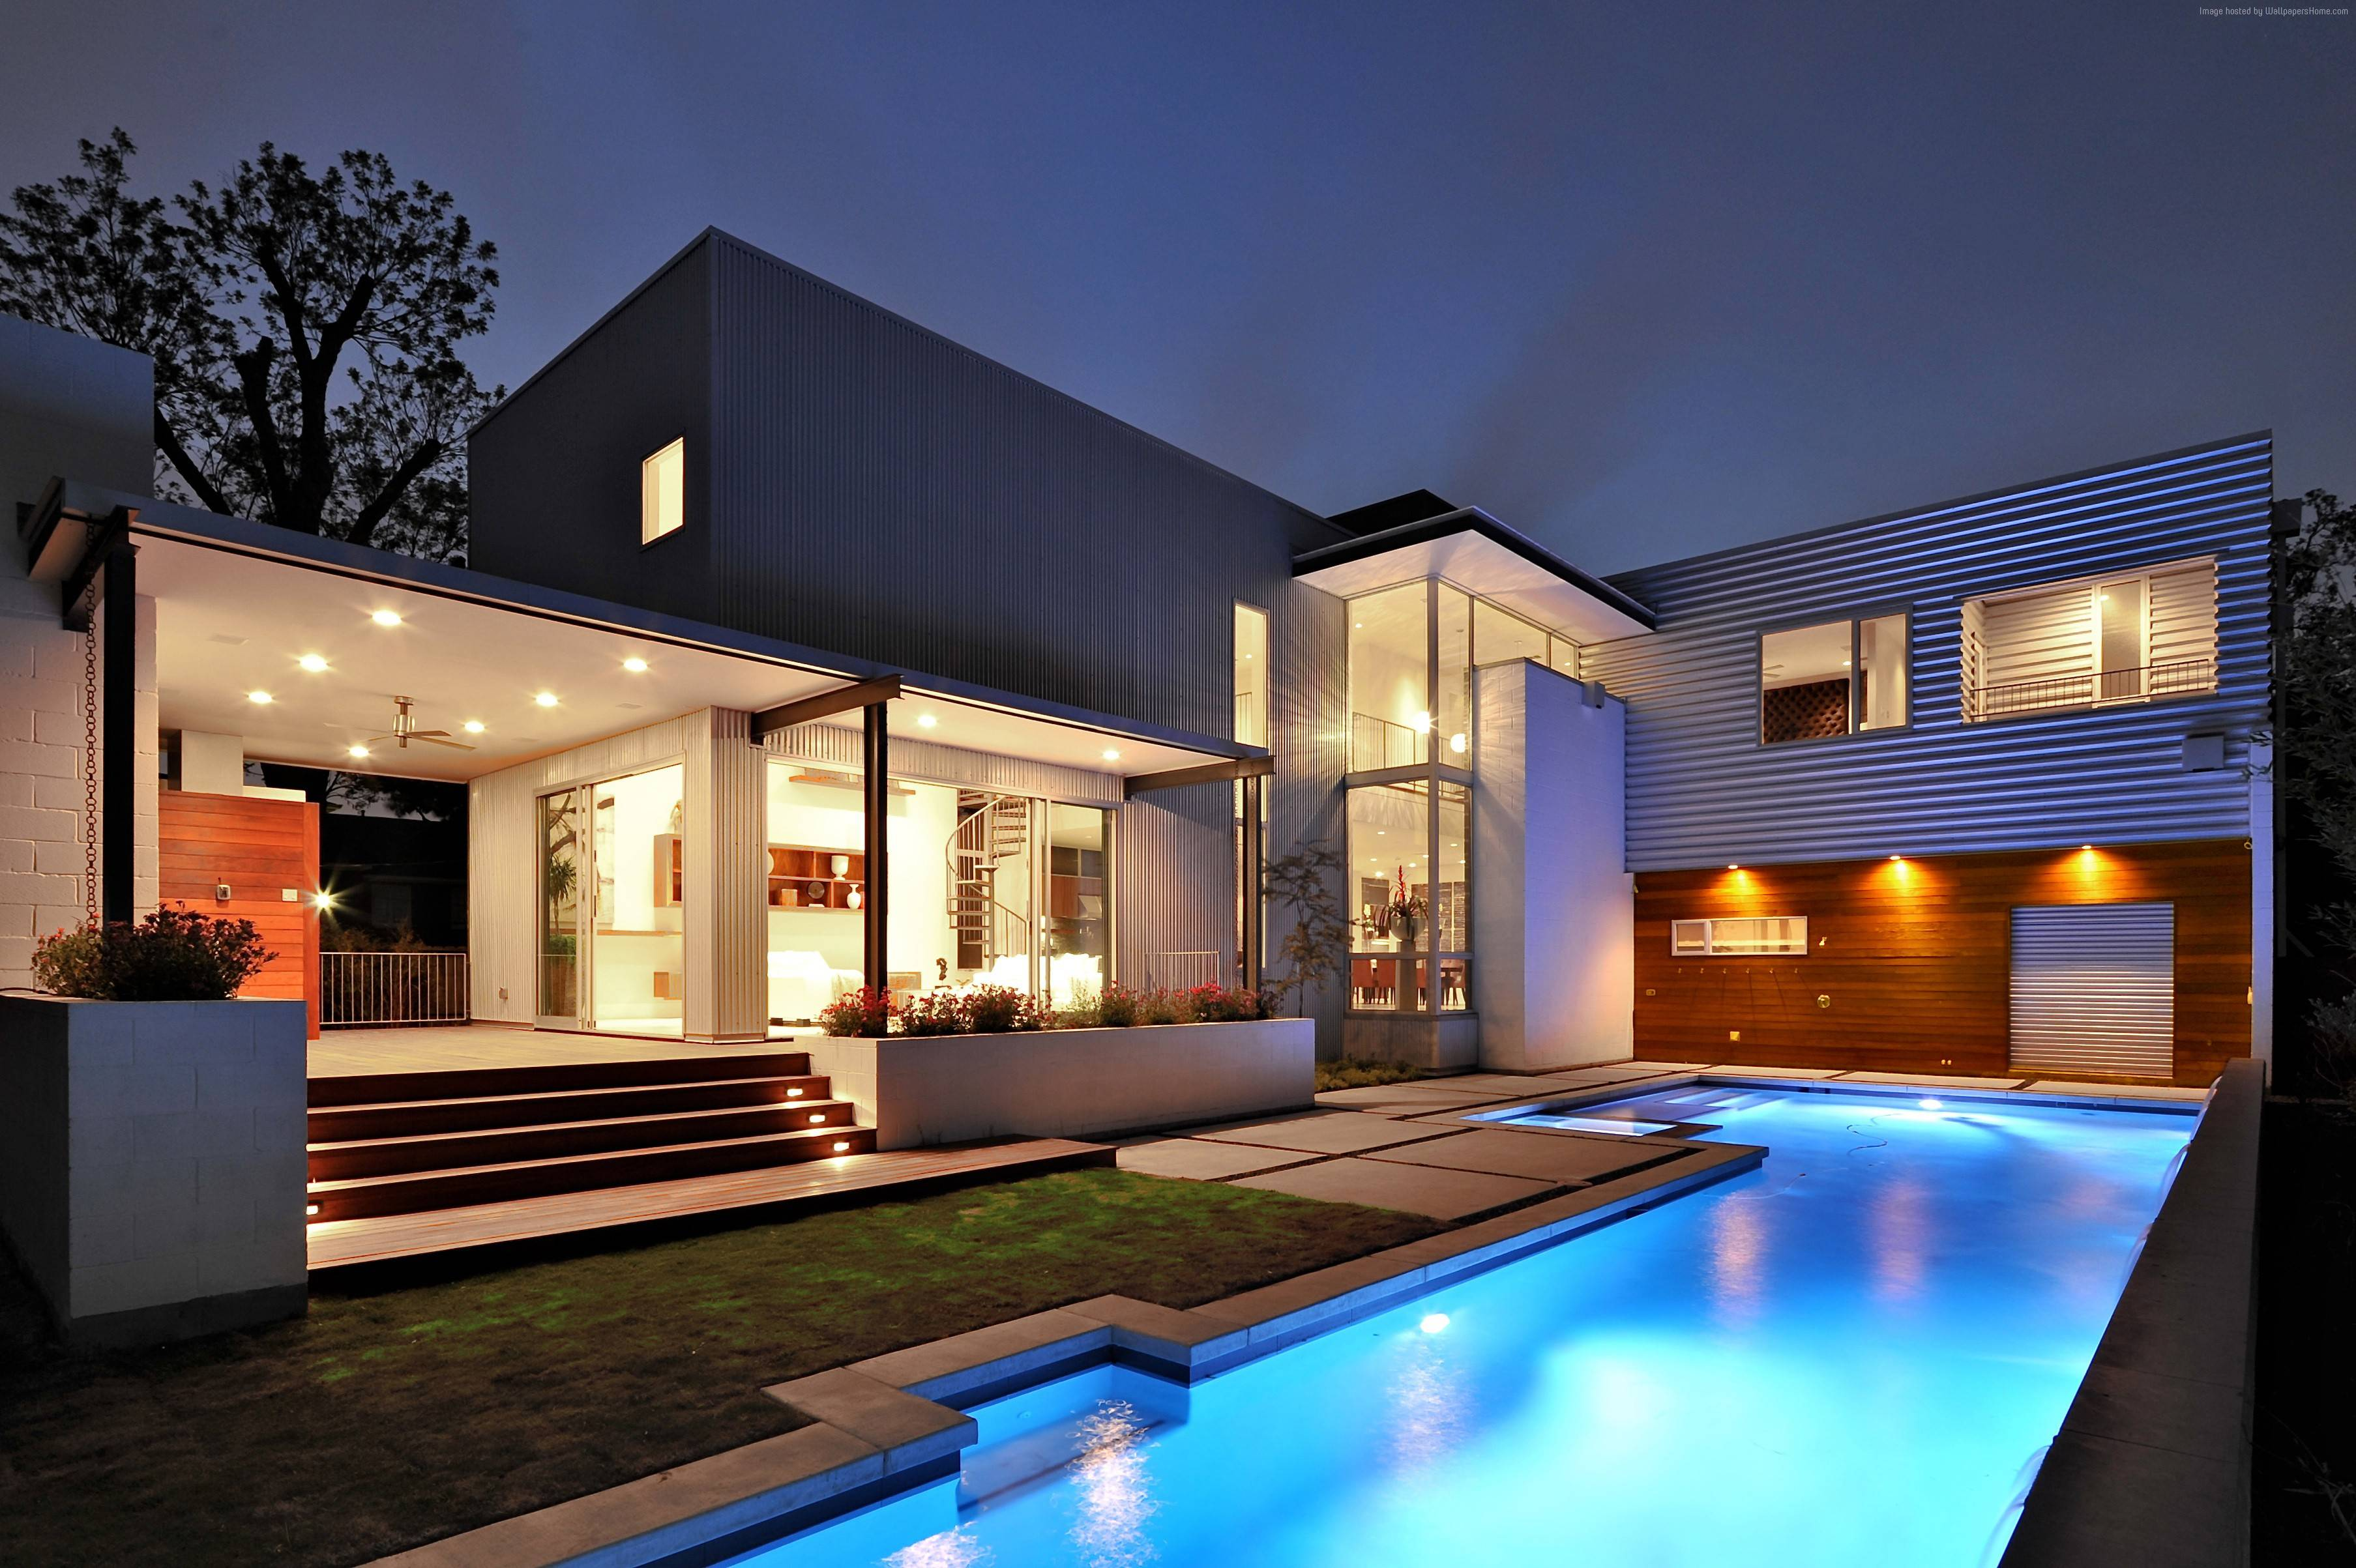 Exterior House Mansion Pool Modern Interior High Tech Yard